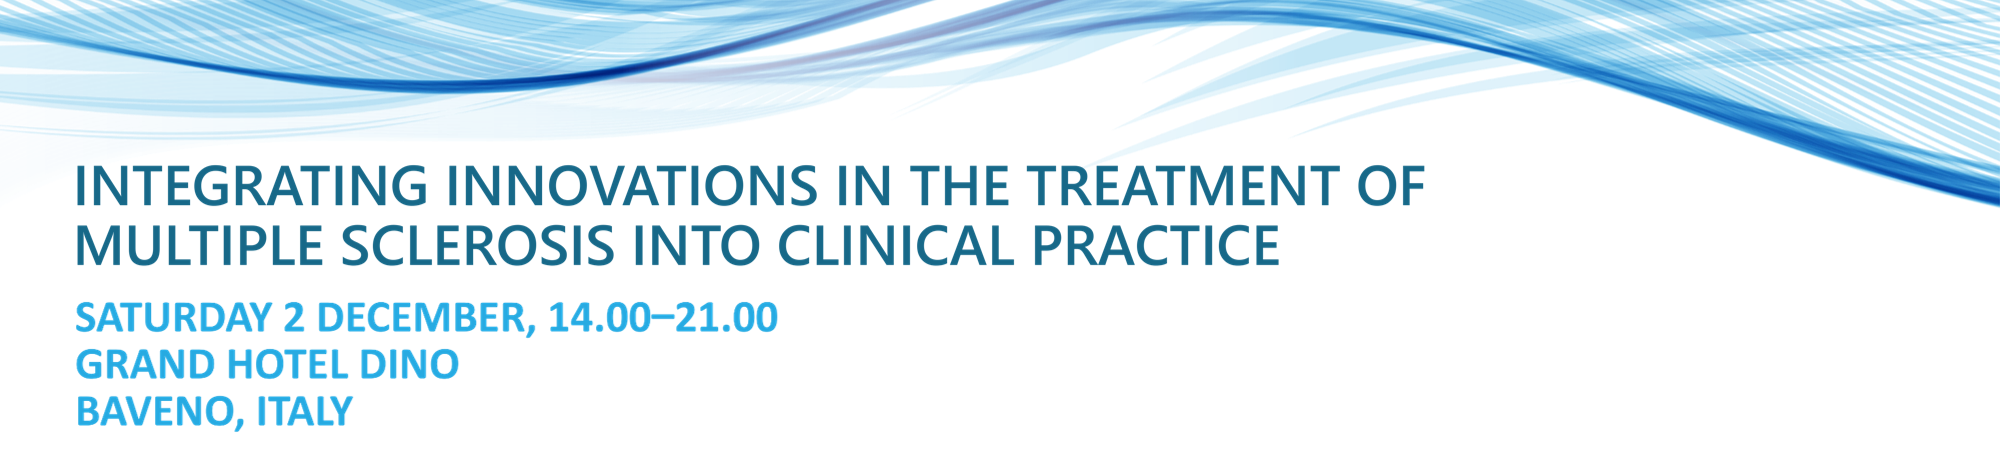 Integrating Innovations in the Treatment of Multiple Sclerosis into Clinical Practice